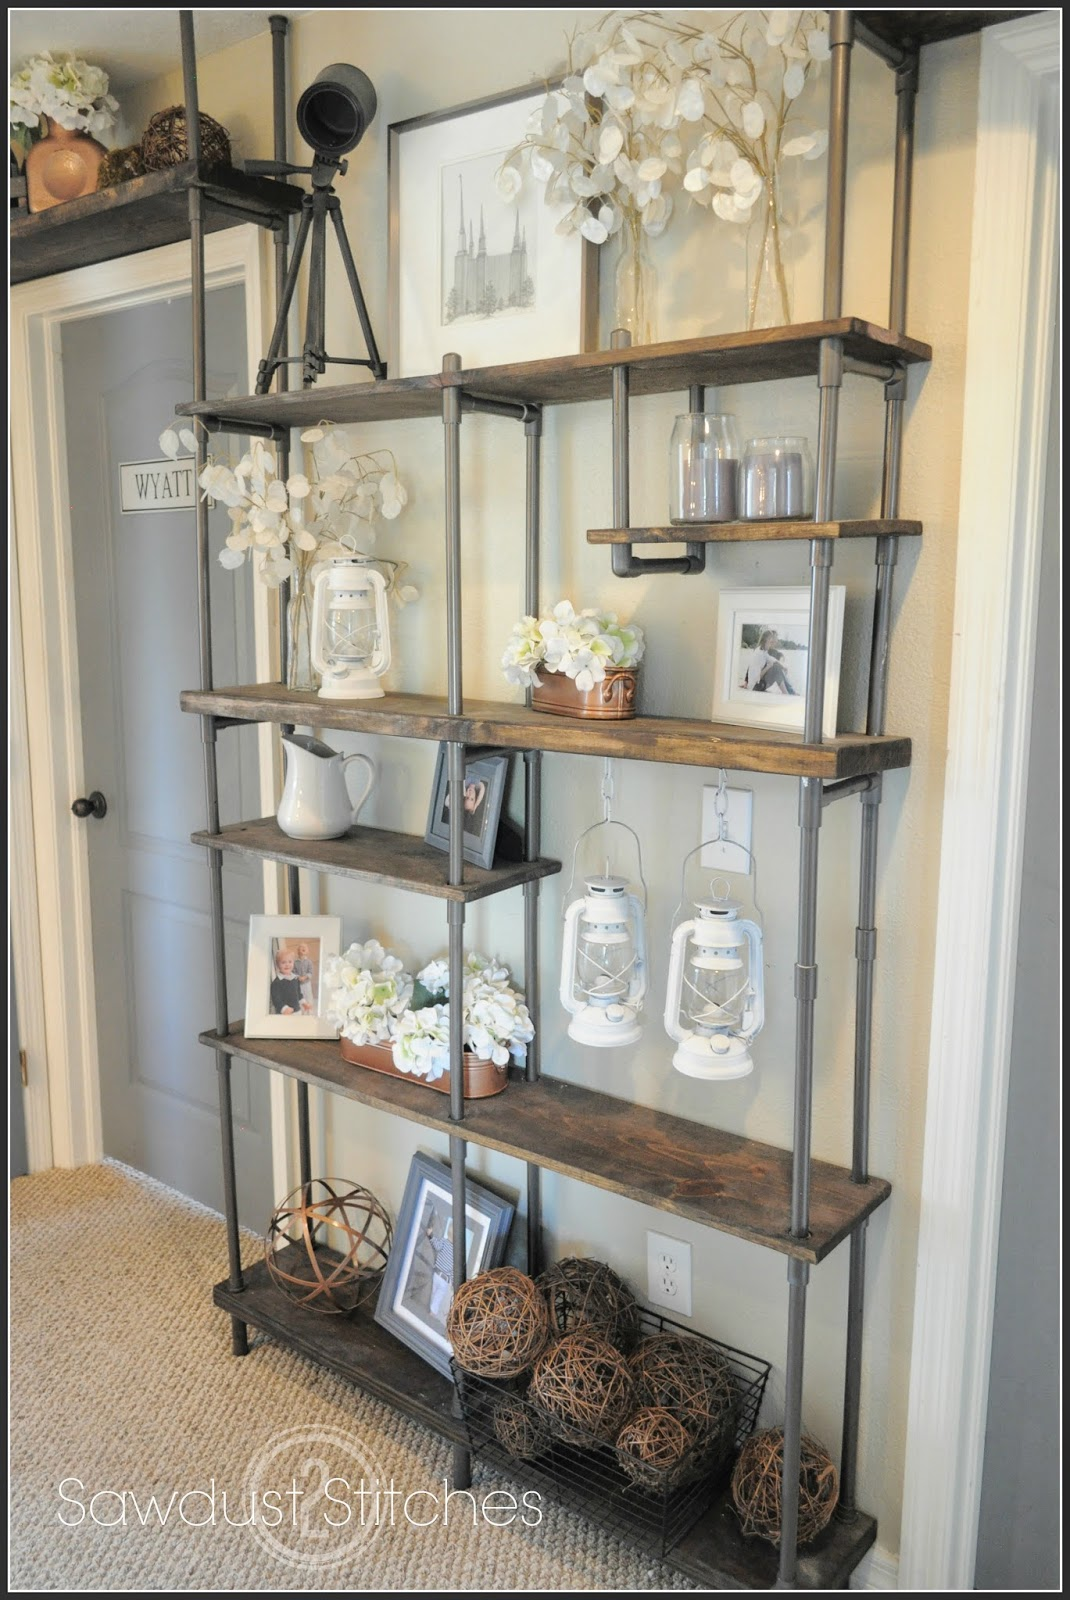 Build A CHEAP Industrial Style Shelf By Using PVC Instead Of Metal! Get The